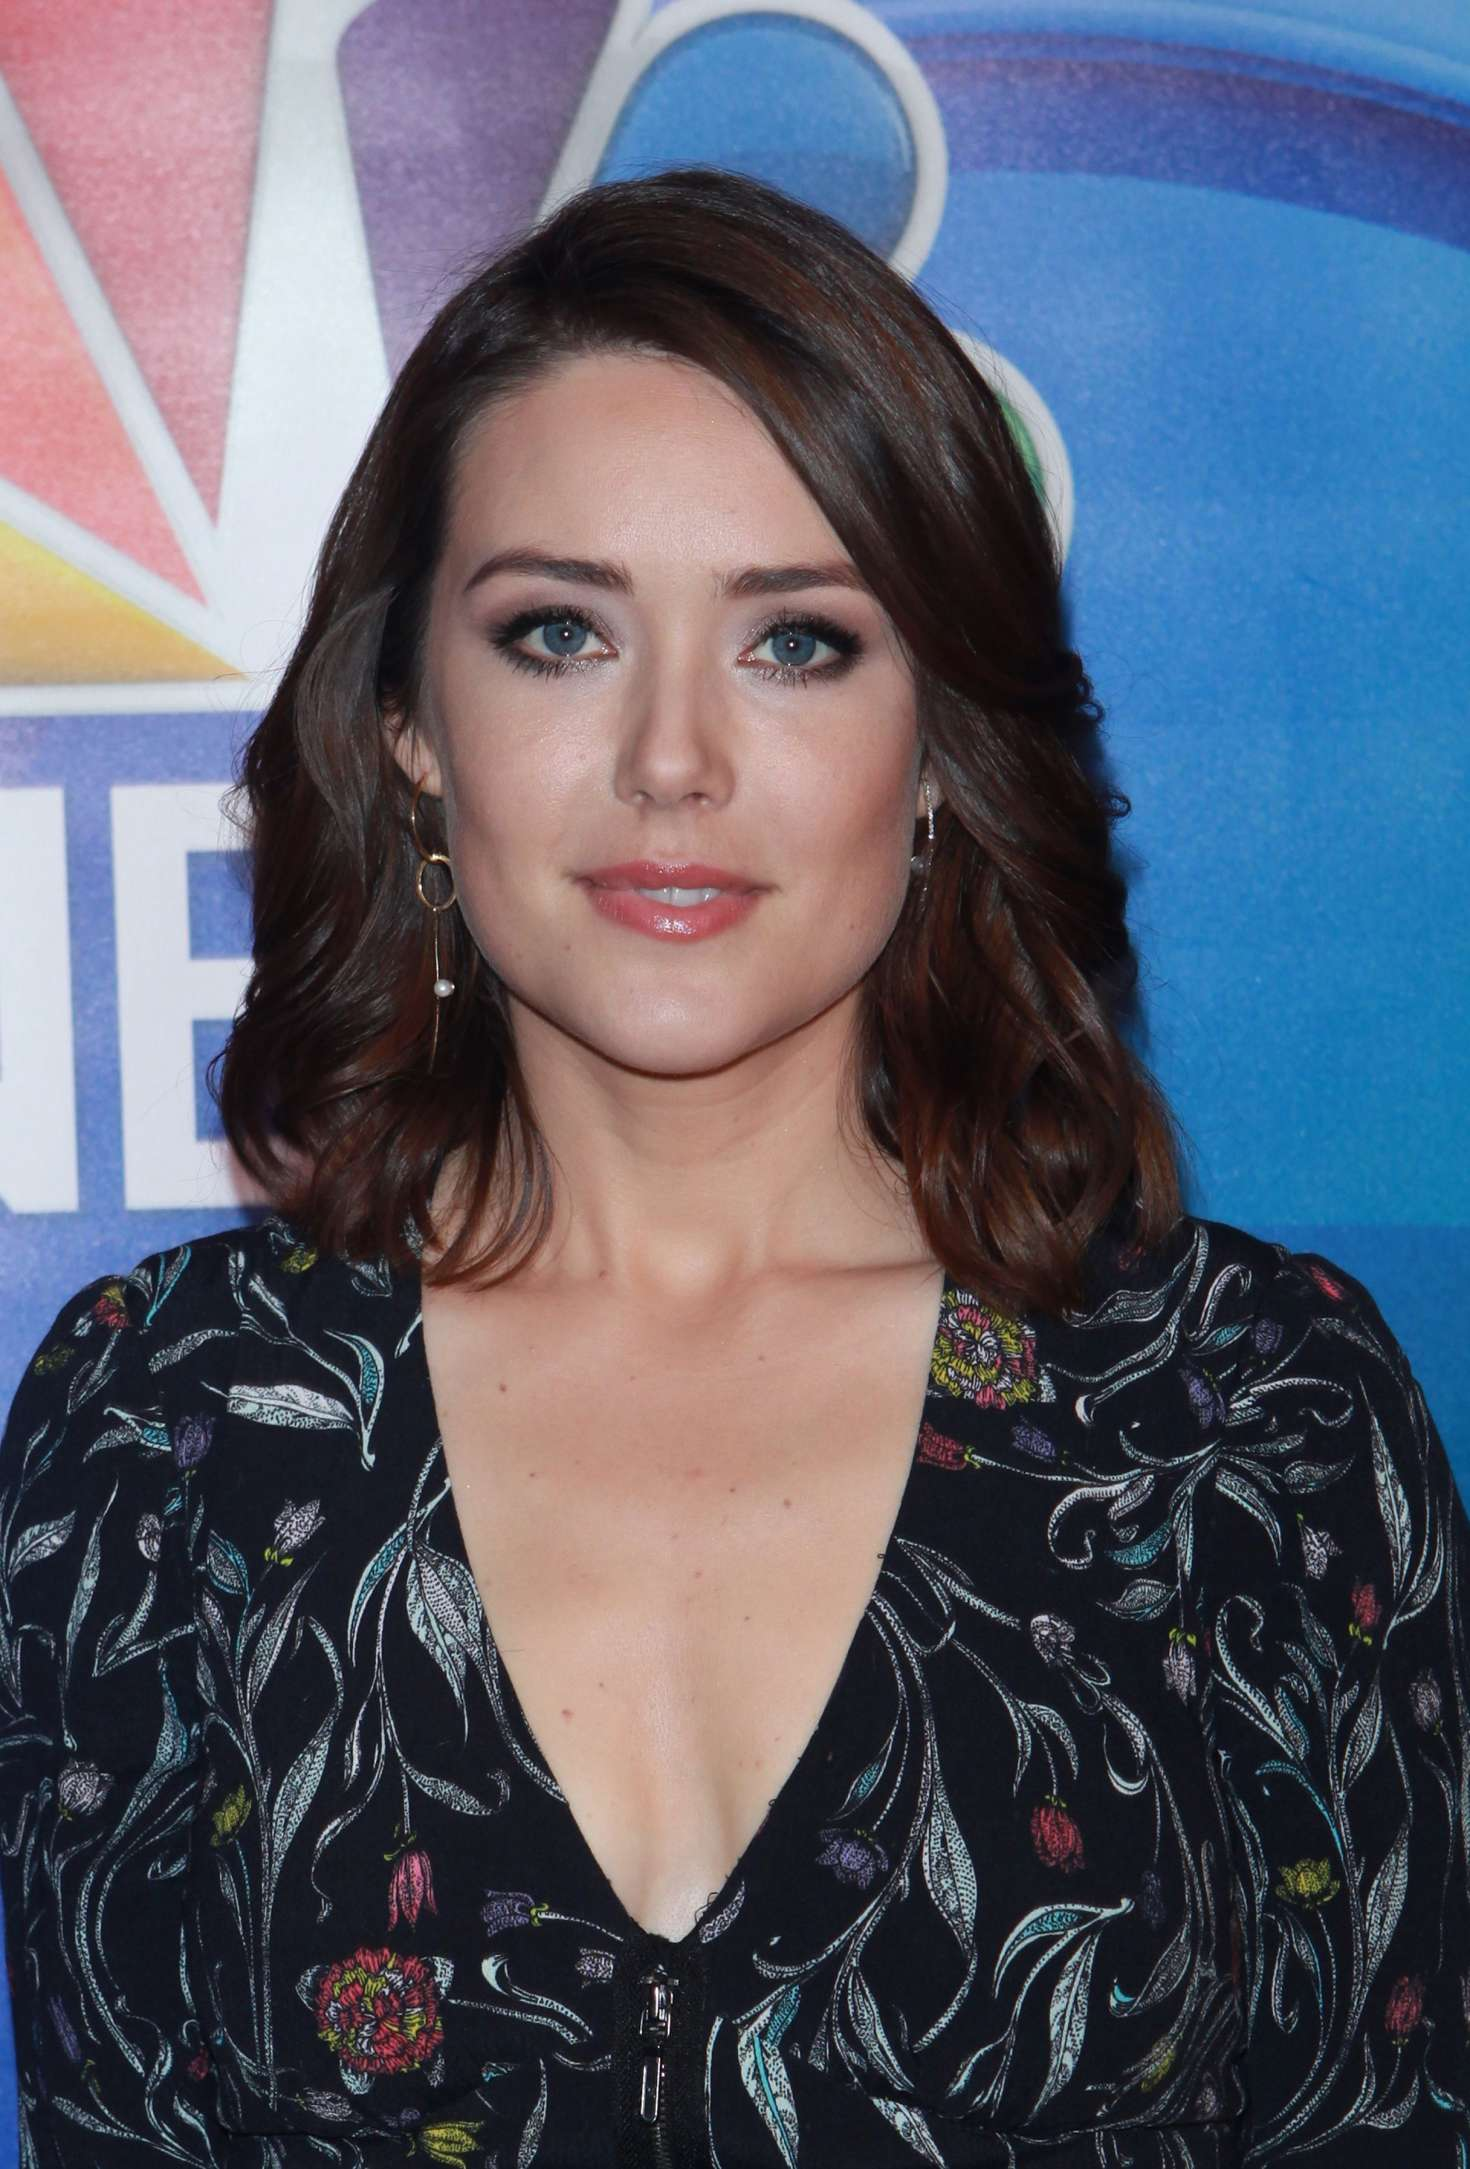 Megan Boone nude (45 fotos), hot Sideboobs, Twitter, lingerie 2016